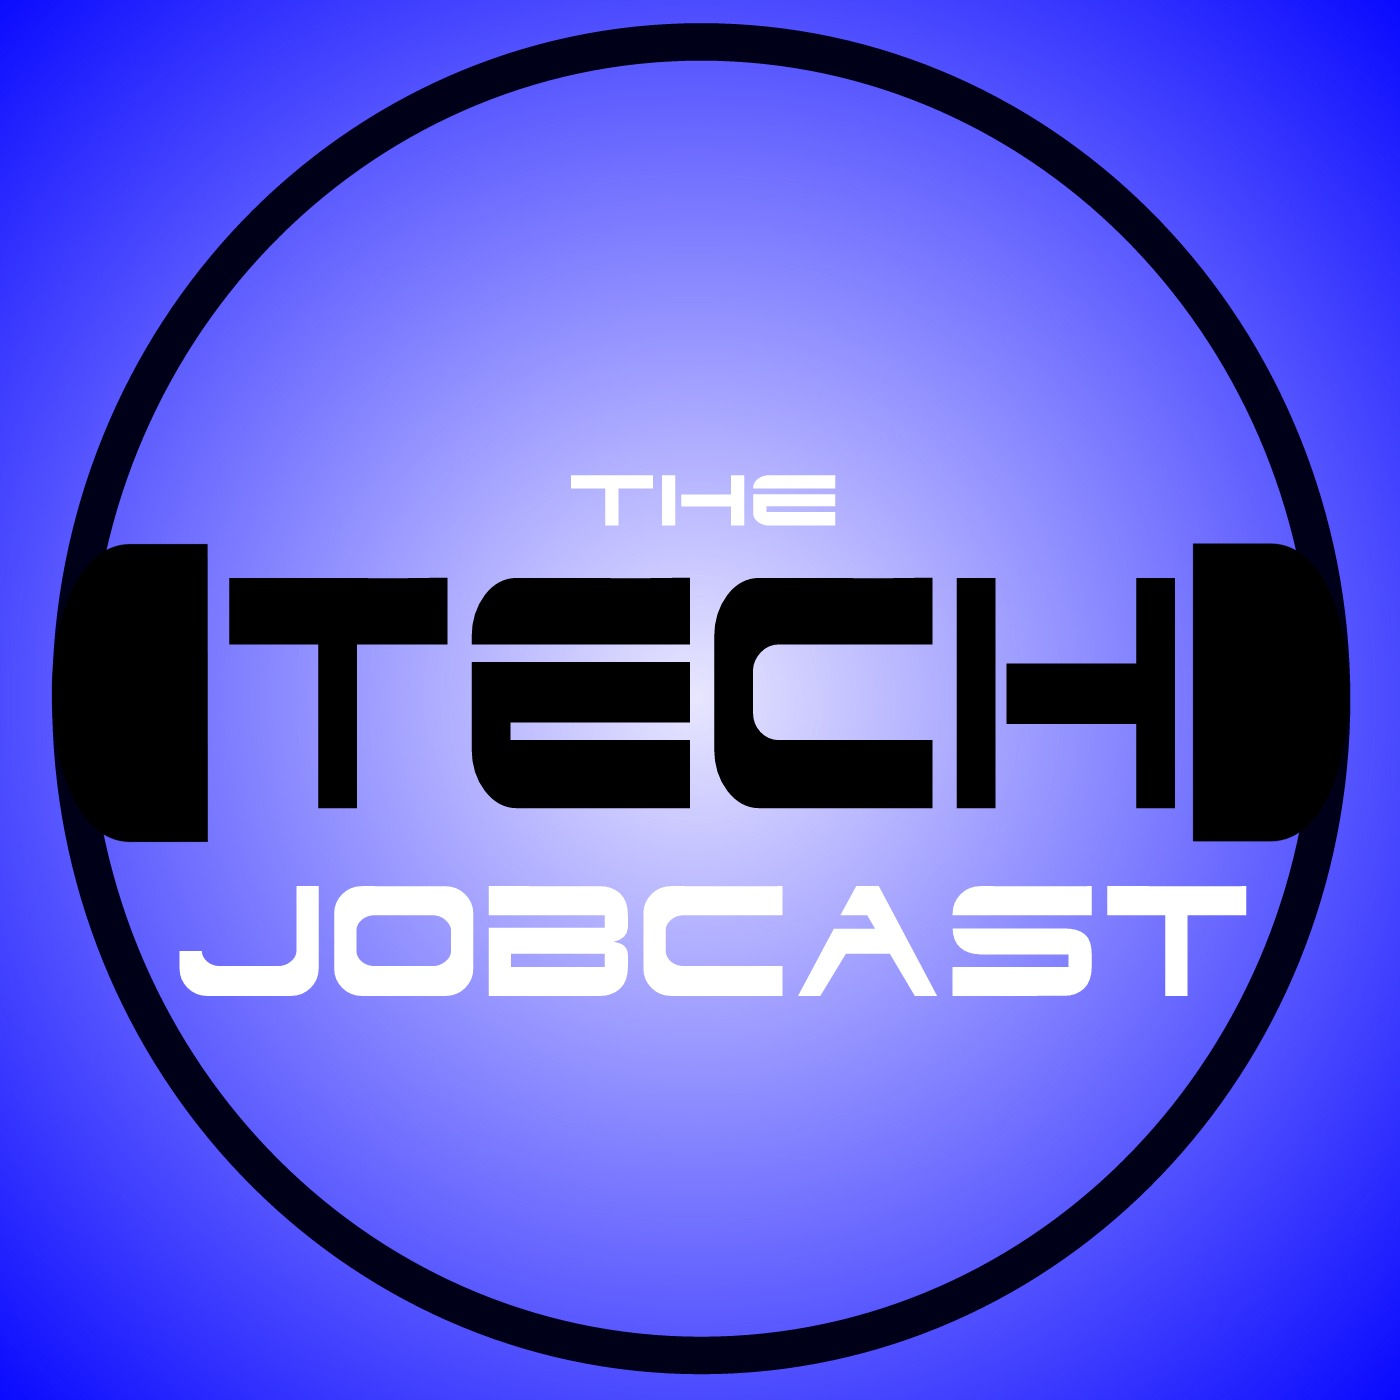 IT Job listings for the week of August 19, 2018